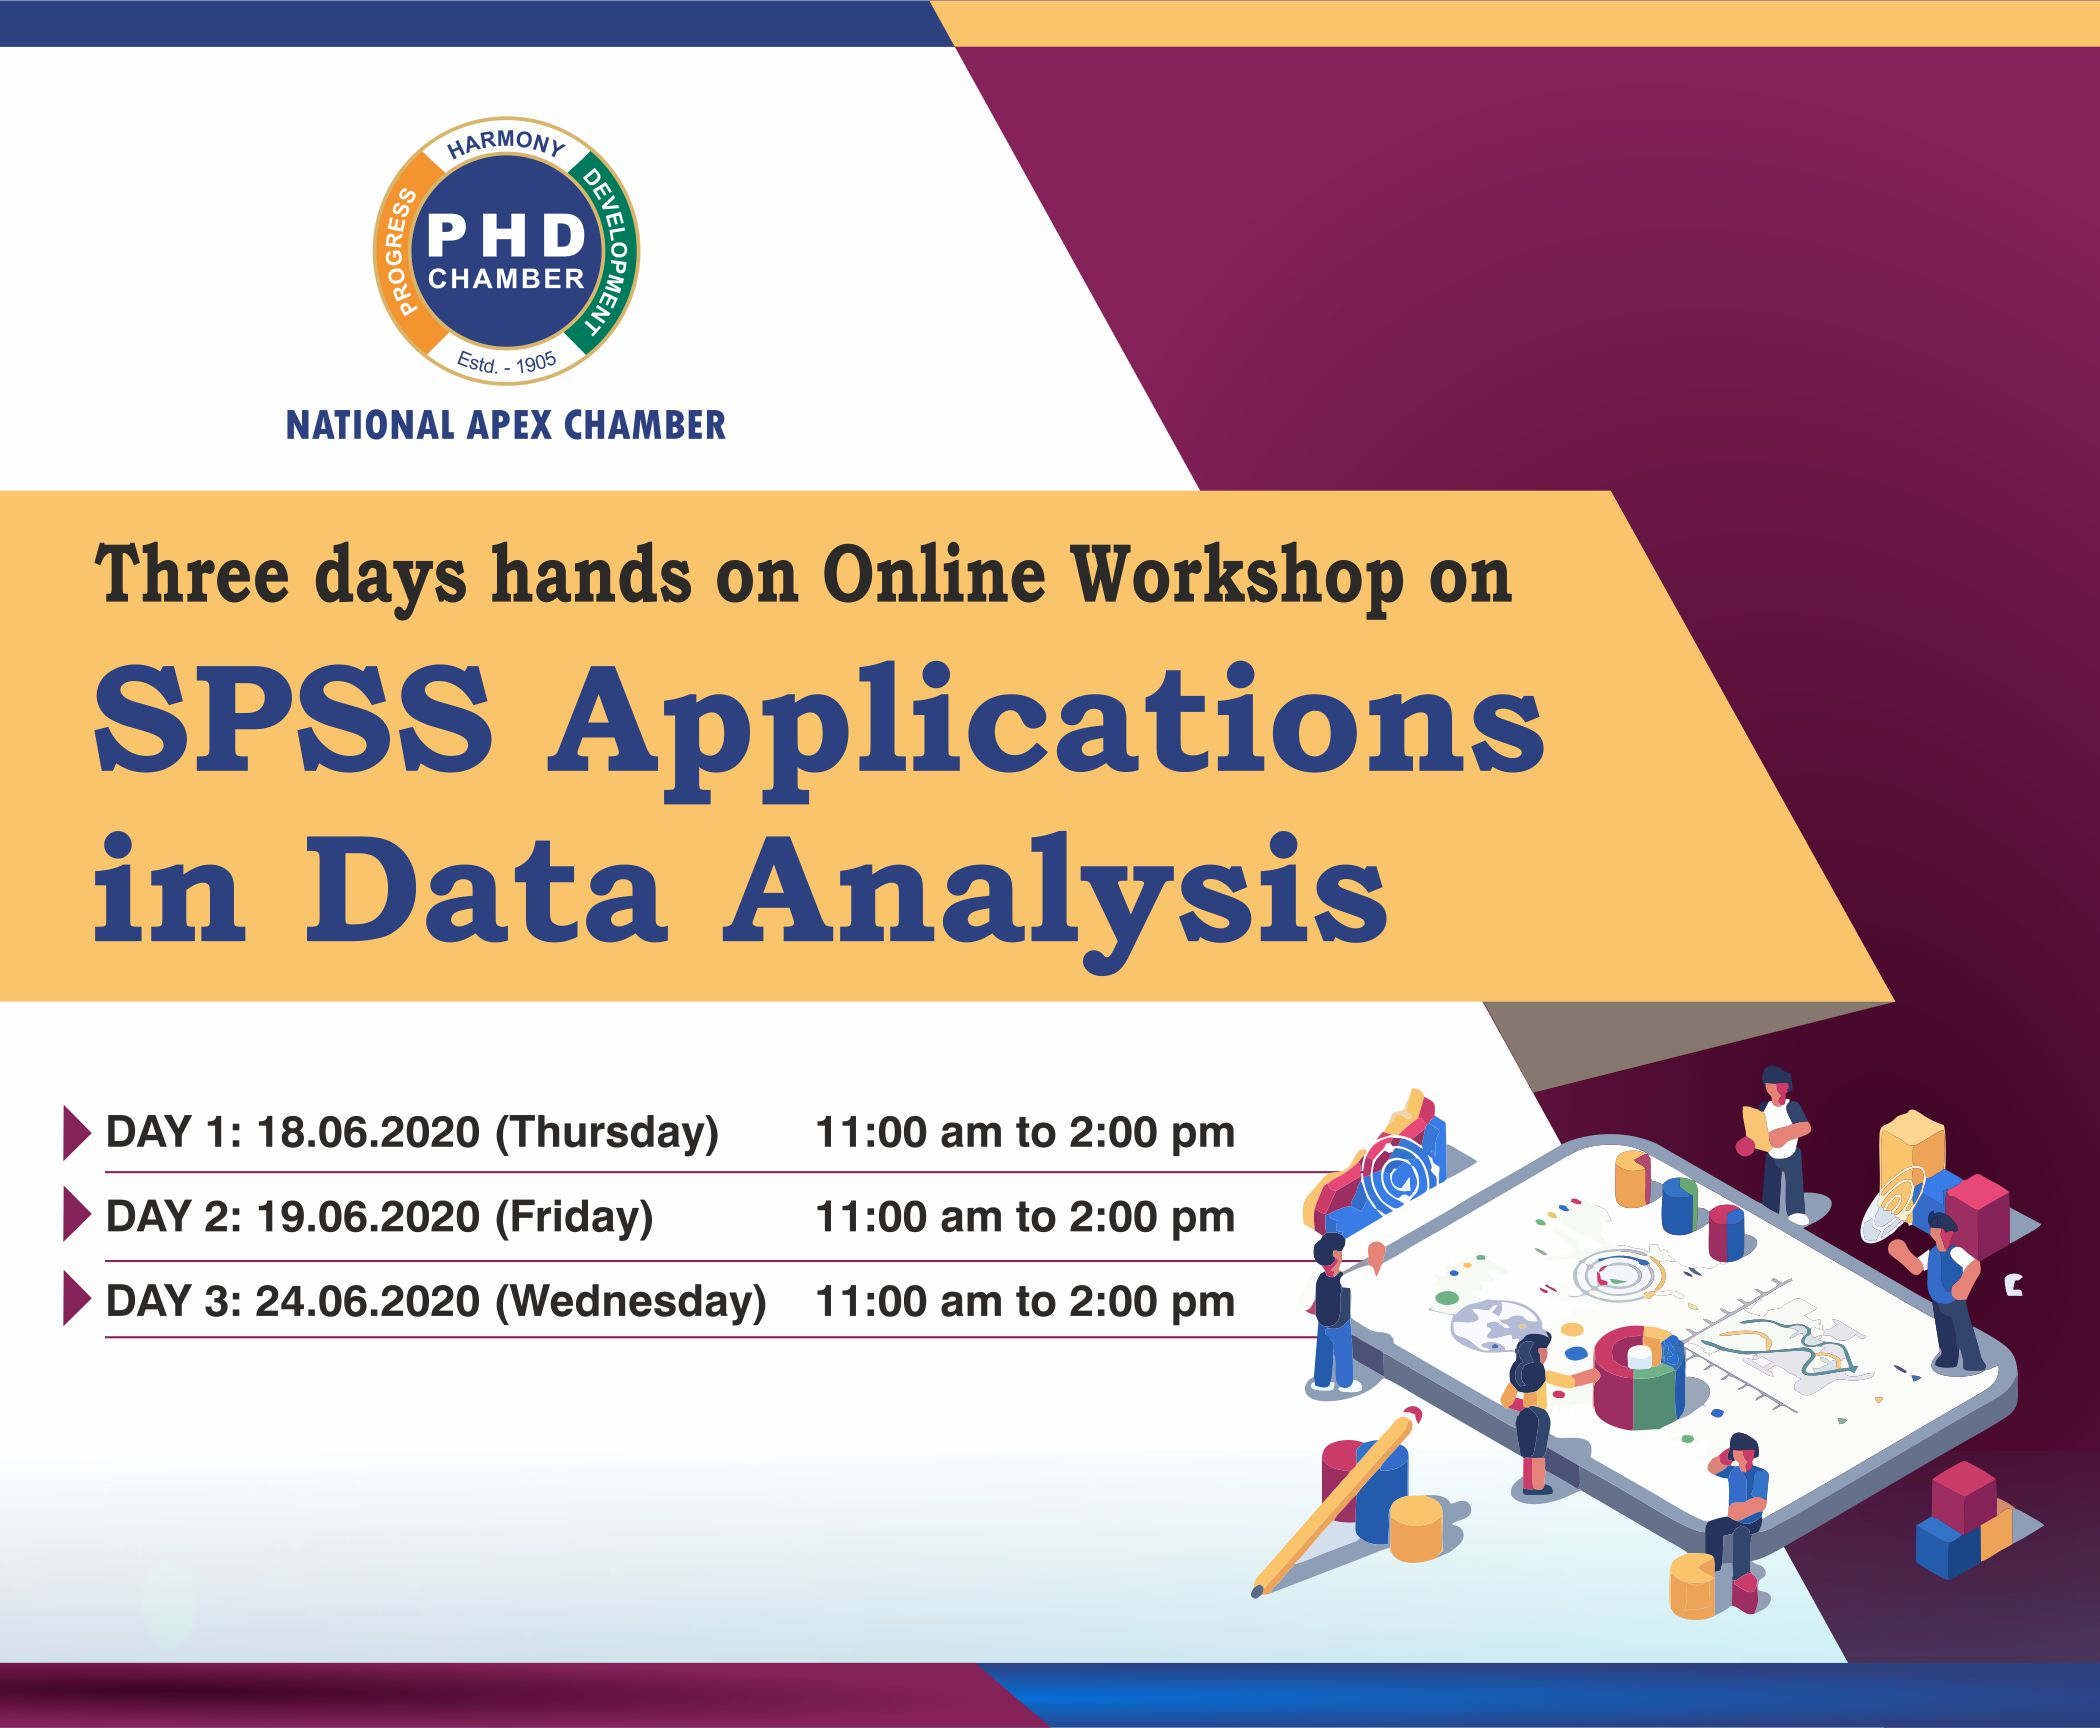 Three days hands on Online Workshop on SPSS Application in Data Analysis